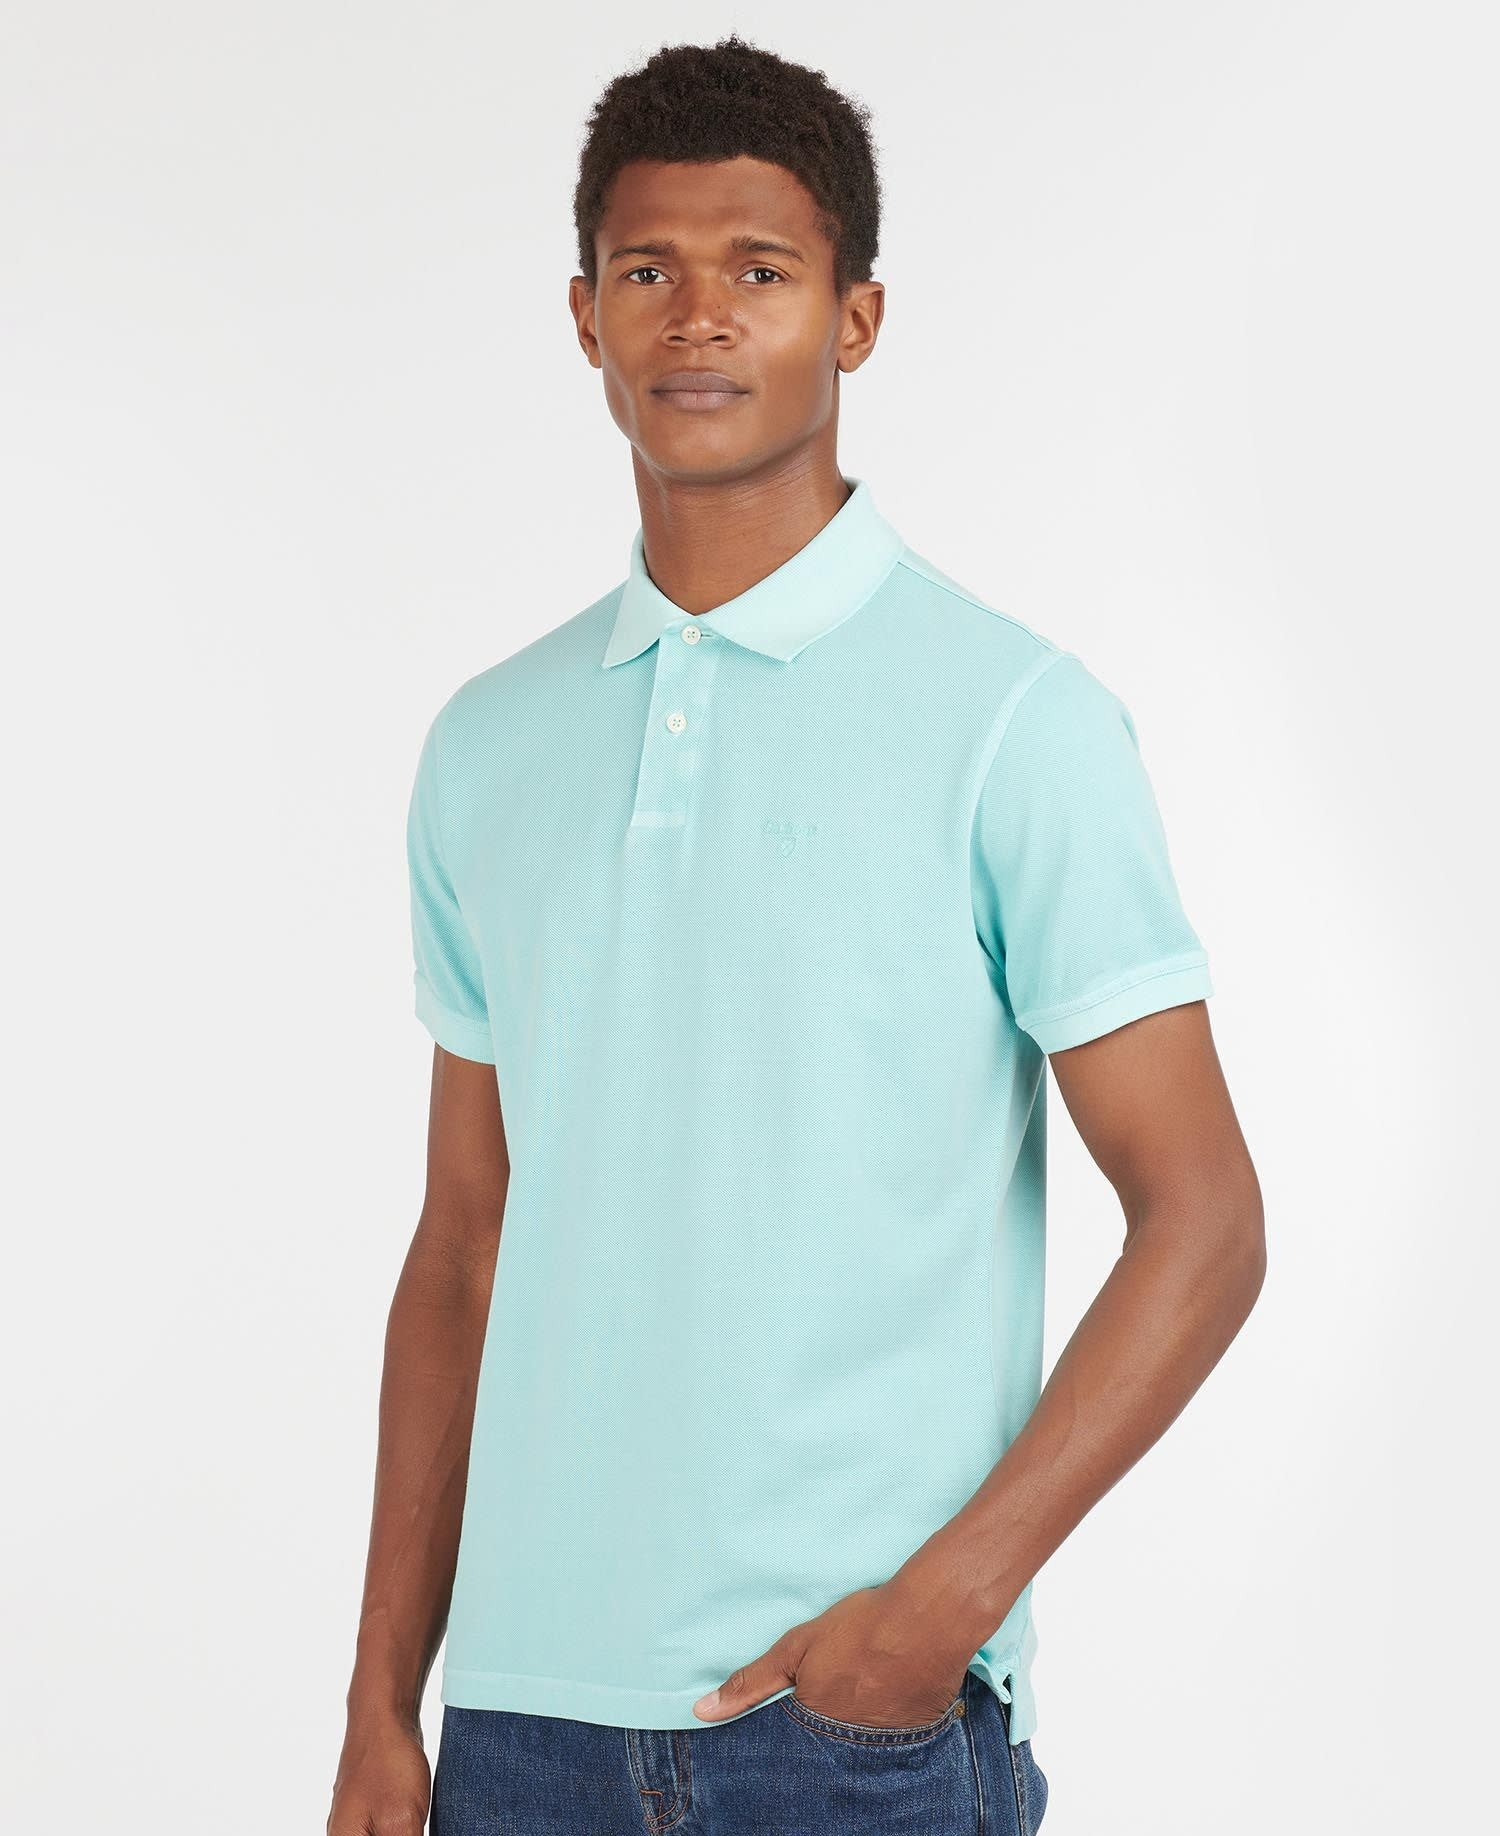 Barbour POLO WASHED SPORT -